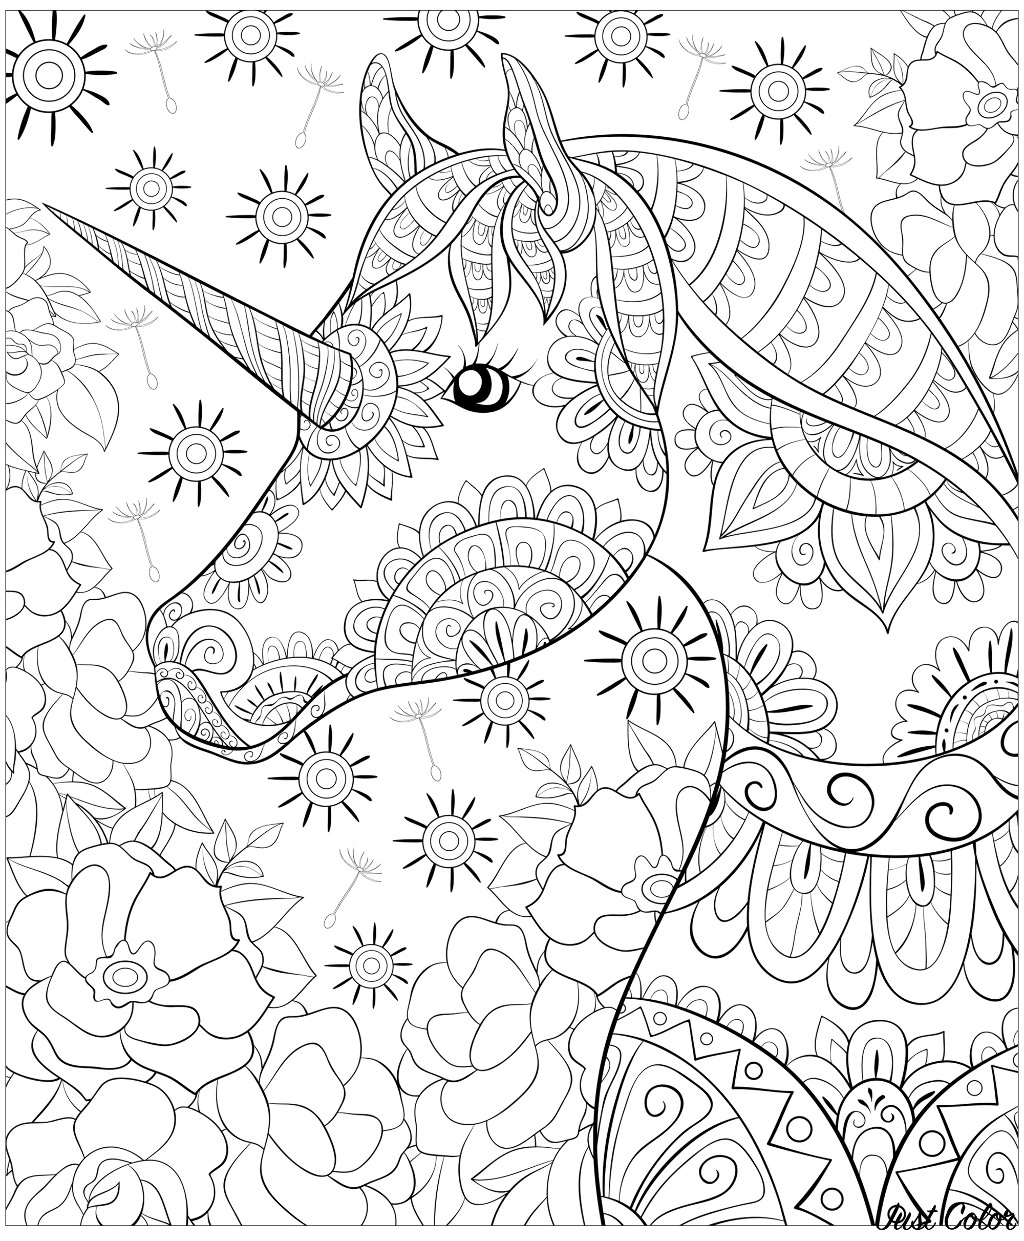 A cute unicorn on the abstract floral background image for relaxing activity